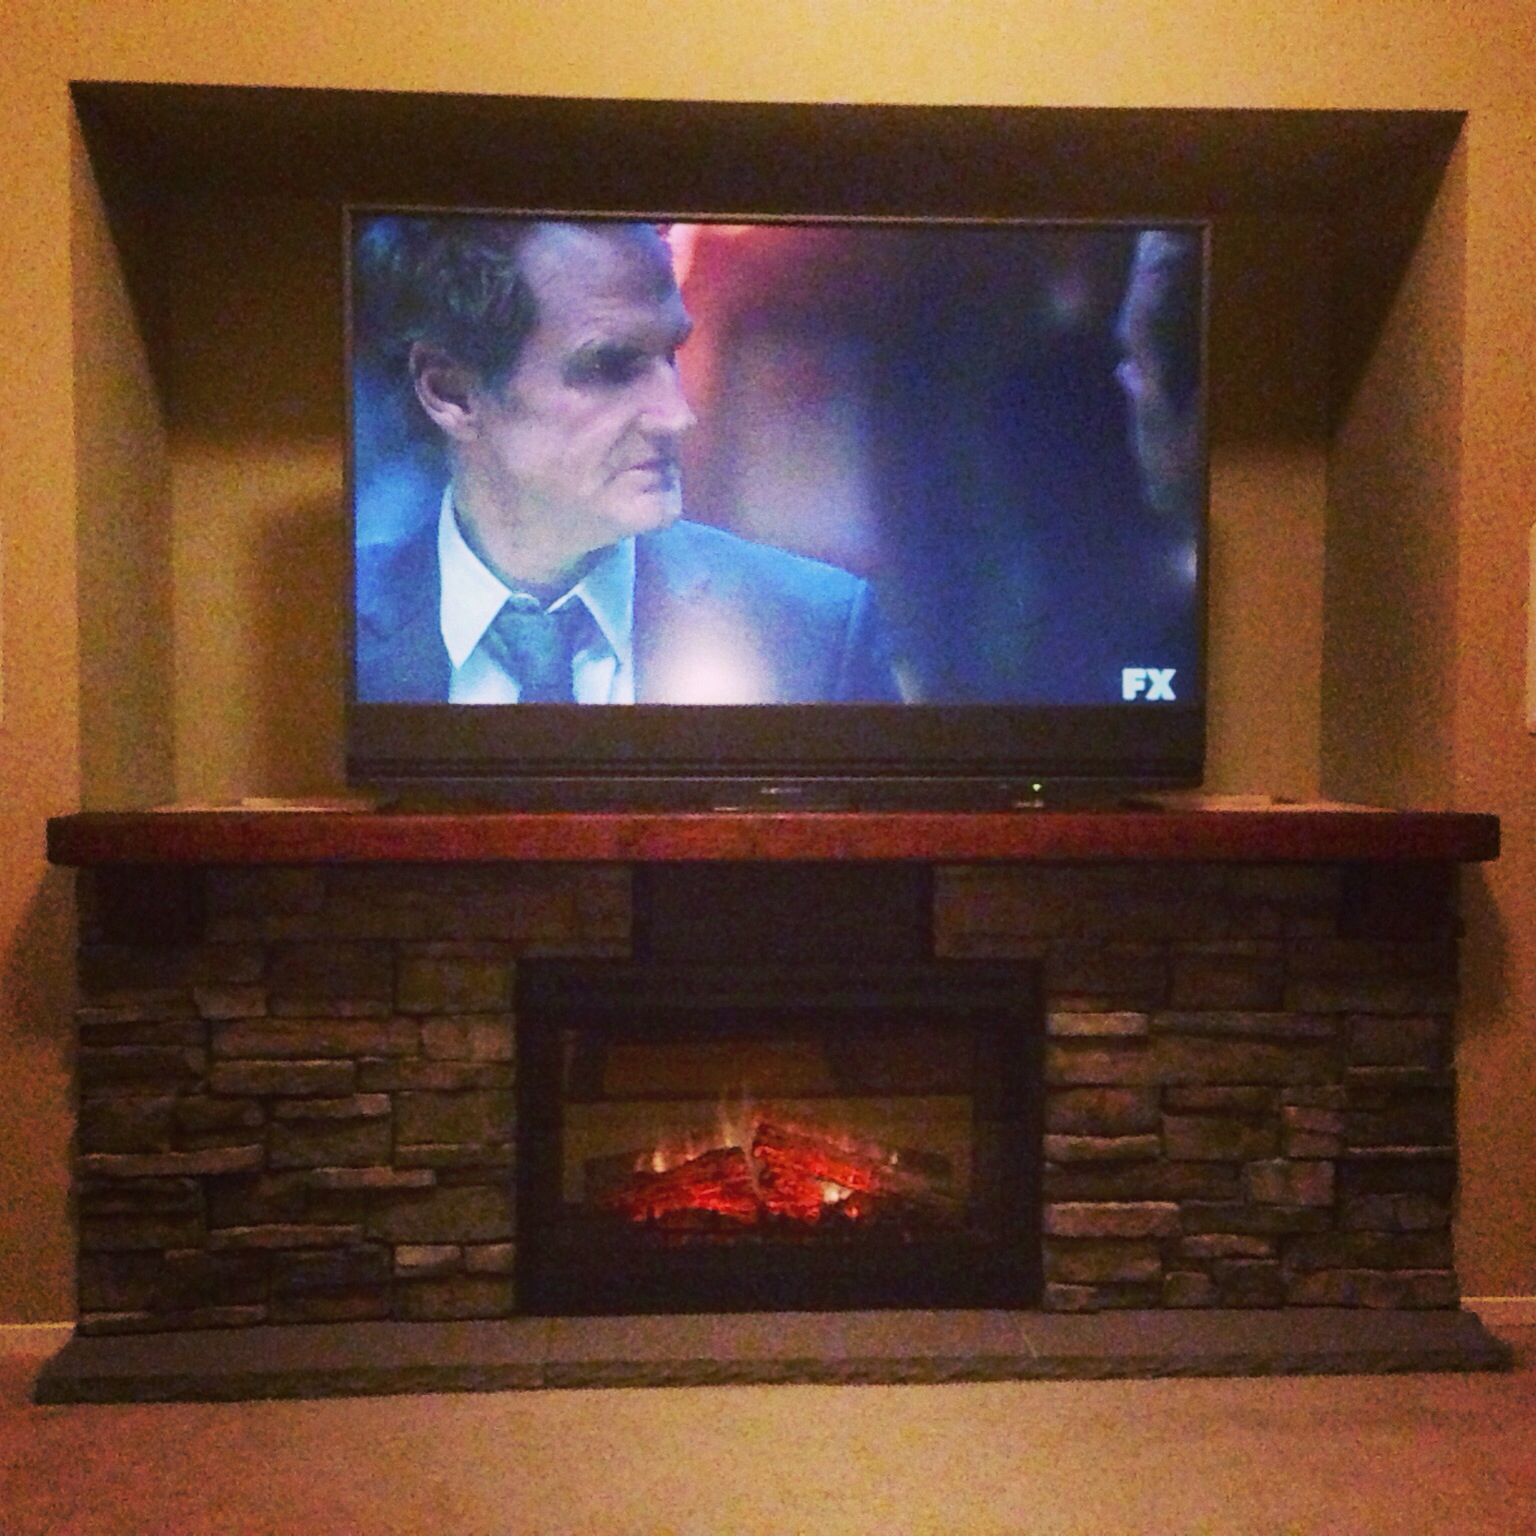 DIY Electric Fireplace / Hearth / TV stand. The components are hidden  behind the stonework - Merrick 65